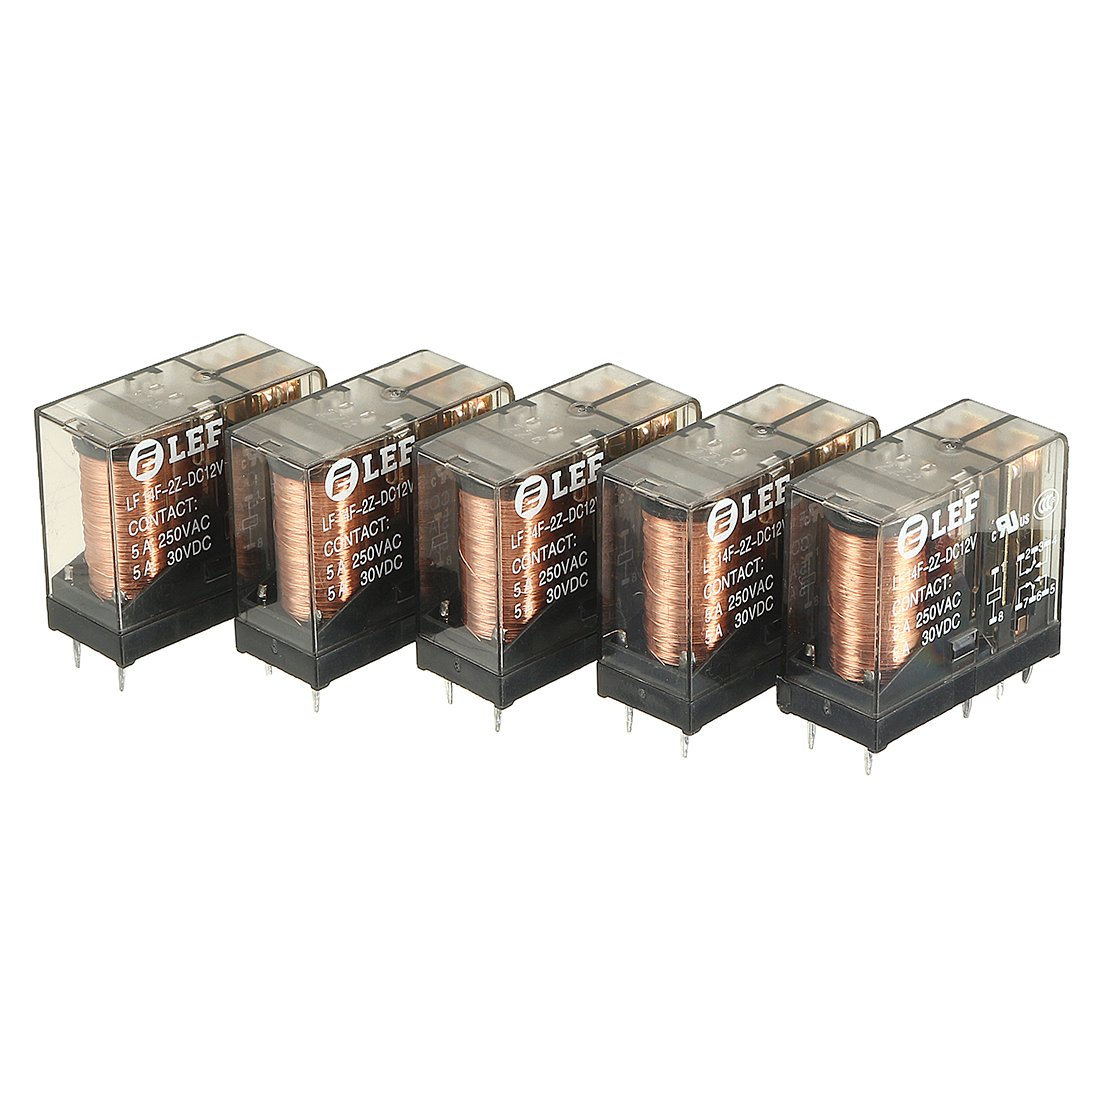 uxcell 5Pcs DC 12V Coil DPDT 2NO+2NC 8Pins Power Electromagnetic Relay DIN Rail/PCB Mounted 250V/30V 5A